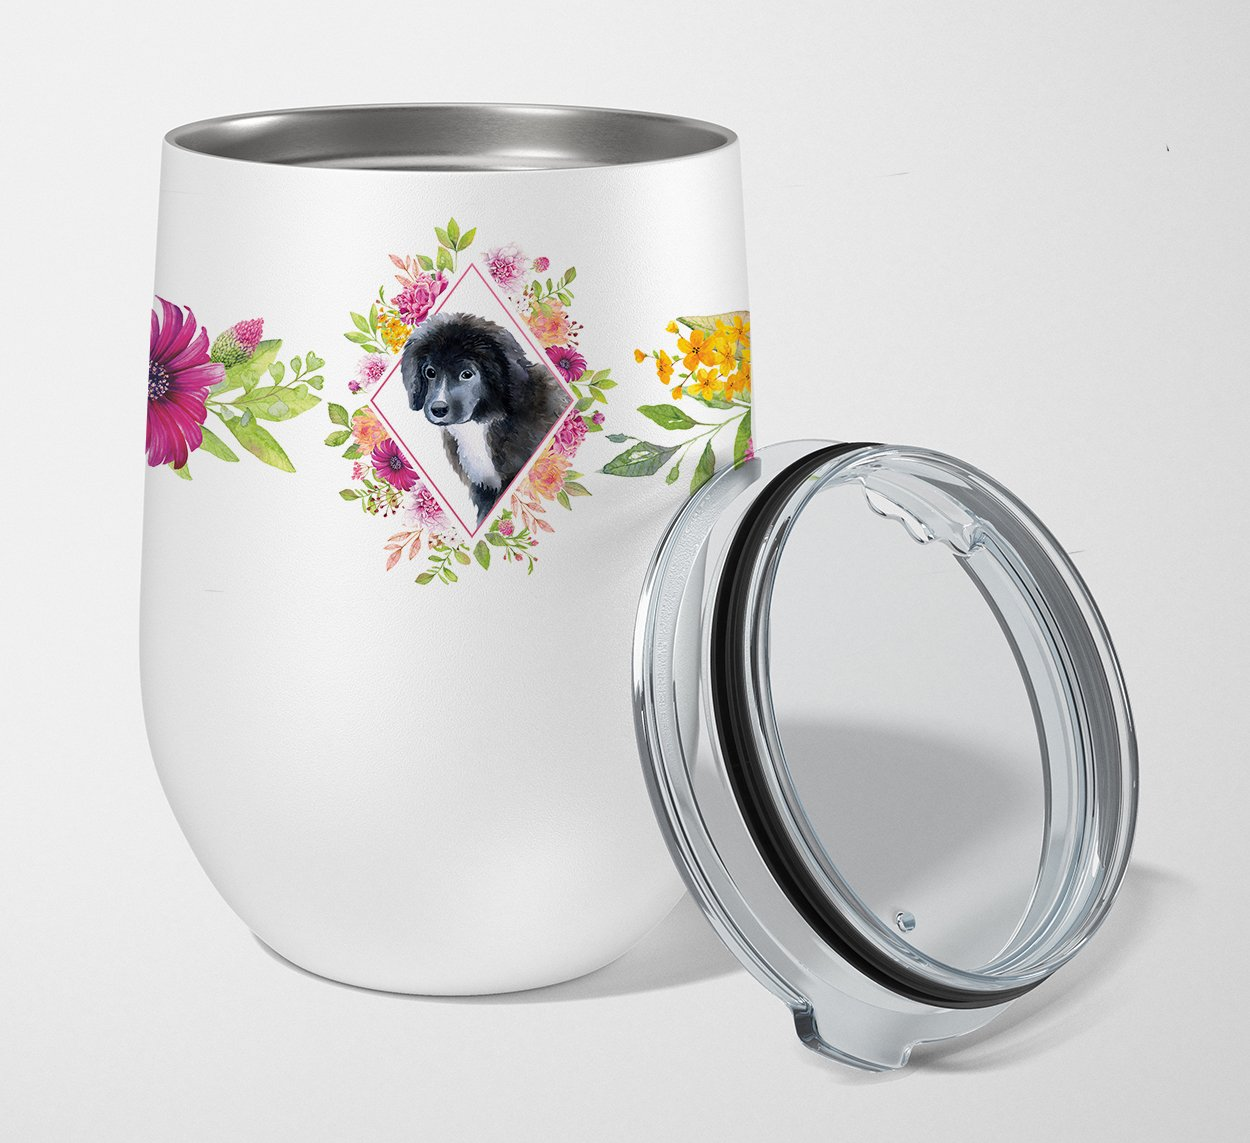 Newfoundland Puppy Pink Flowers Stainless Steel 12 oz Stemless Wine Glass CK4164TBL12 by Caroline's Treasures